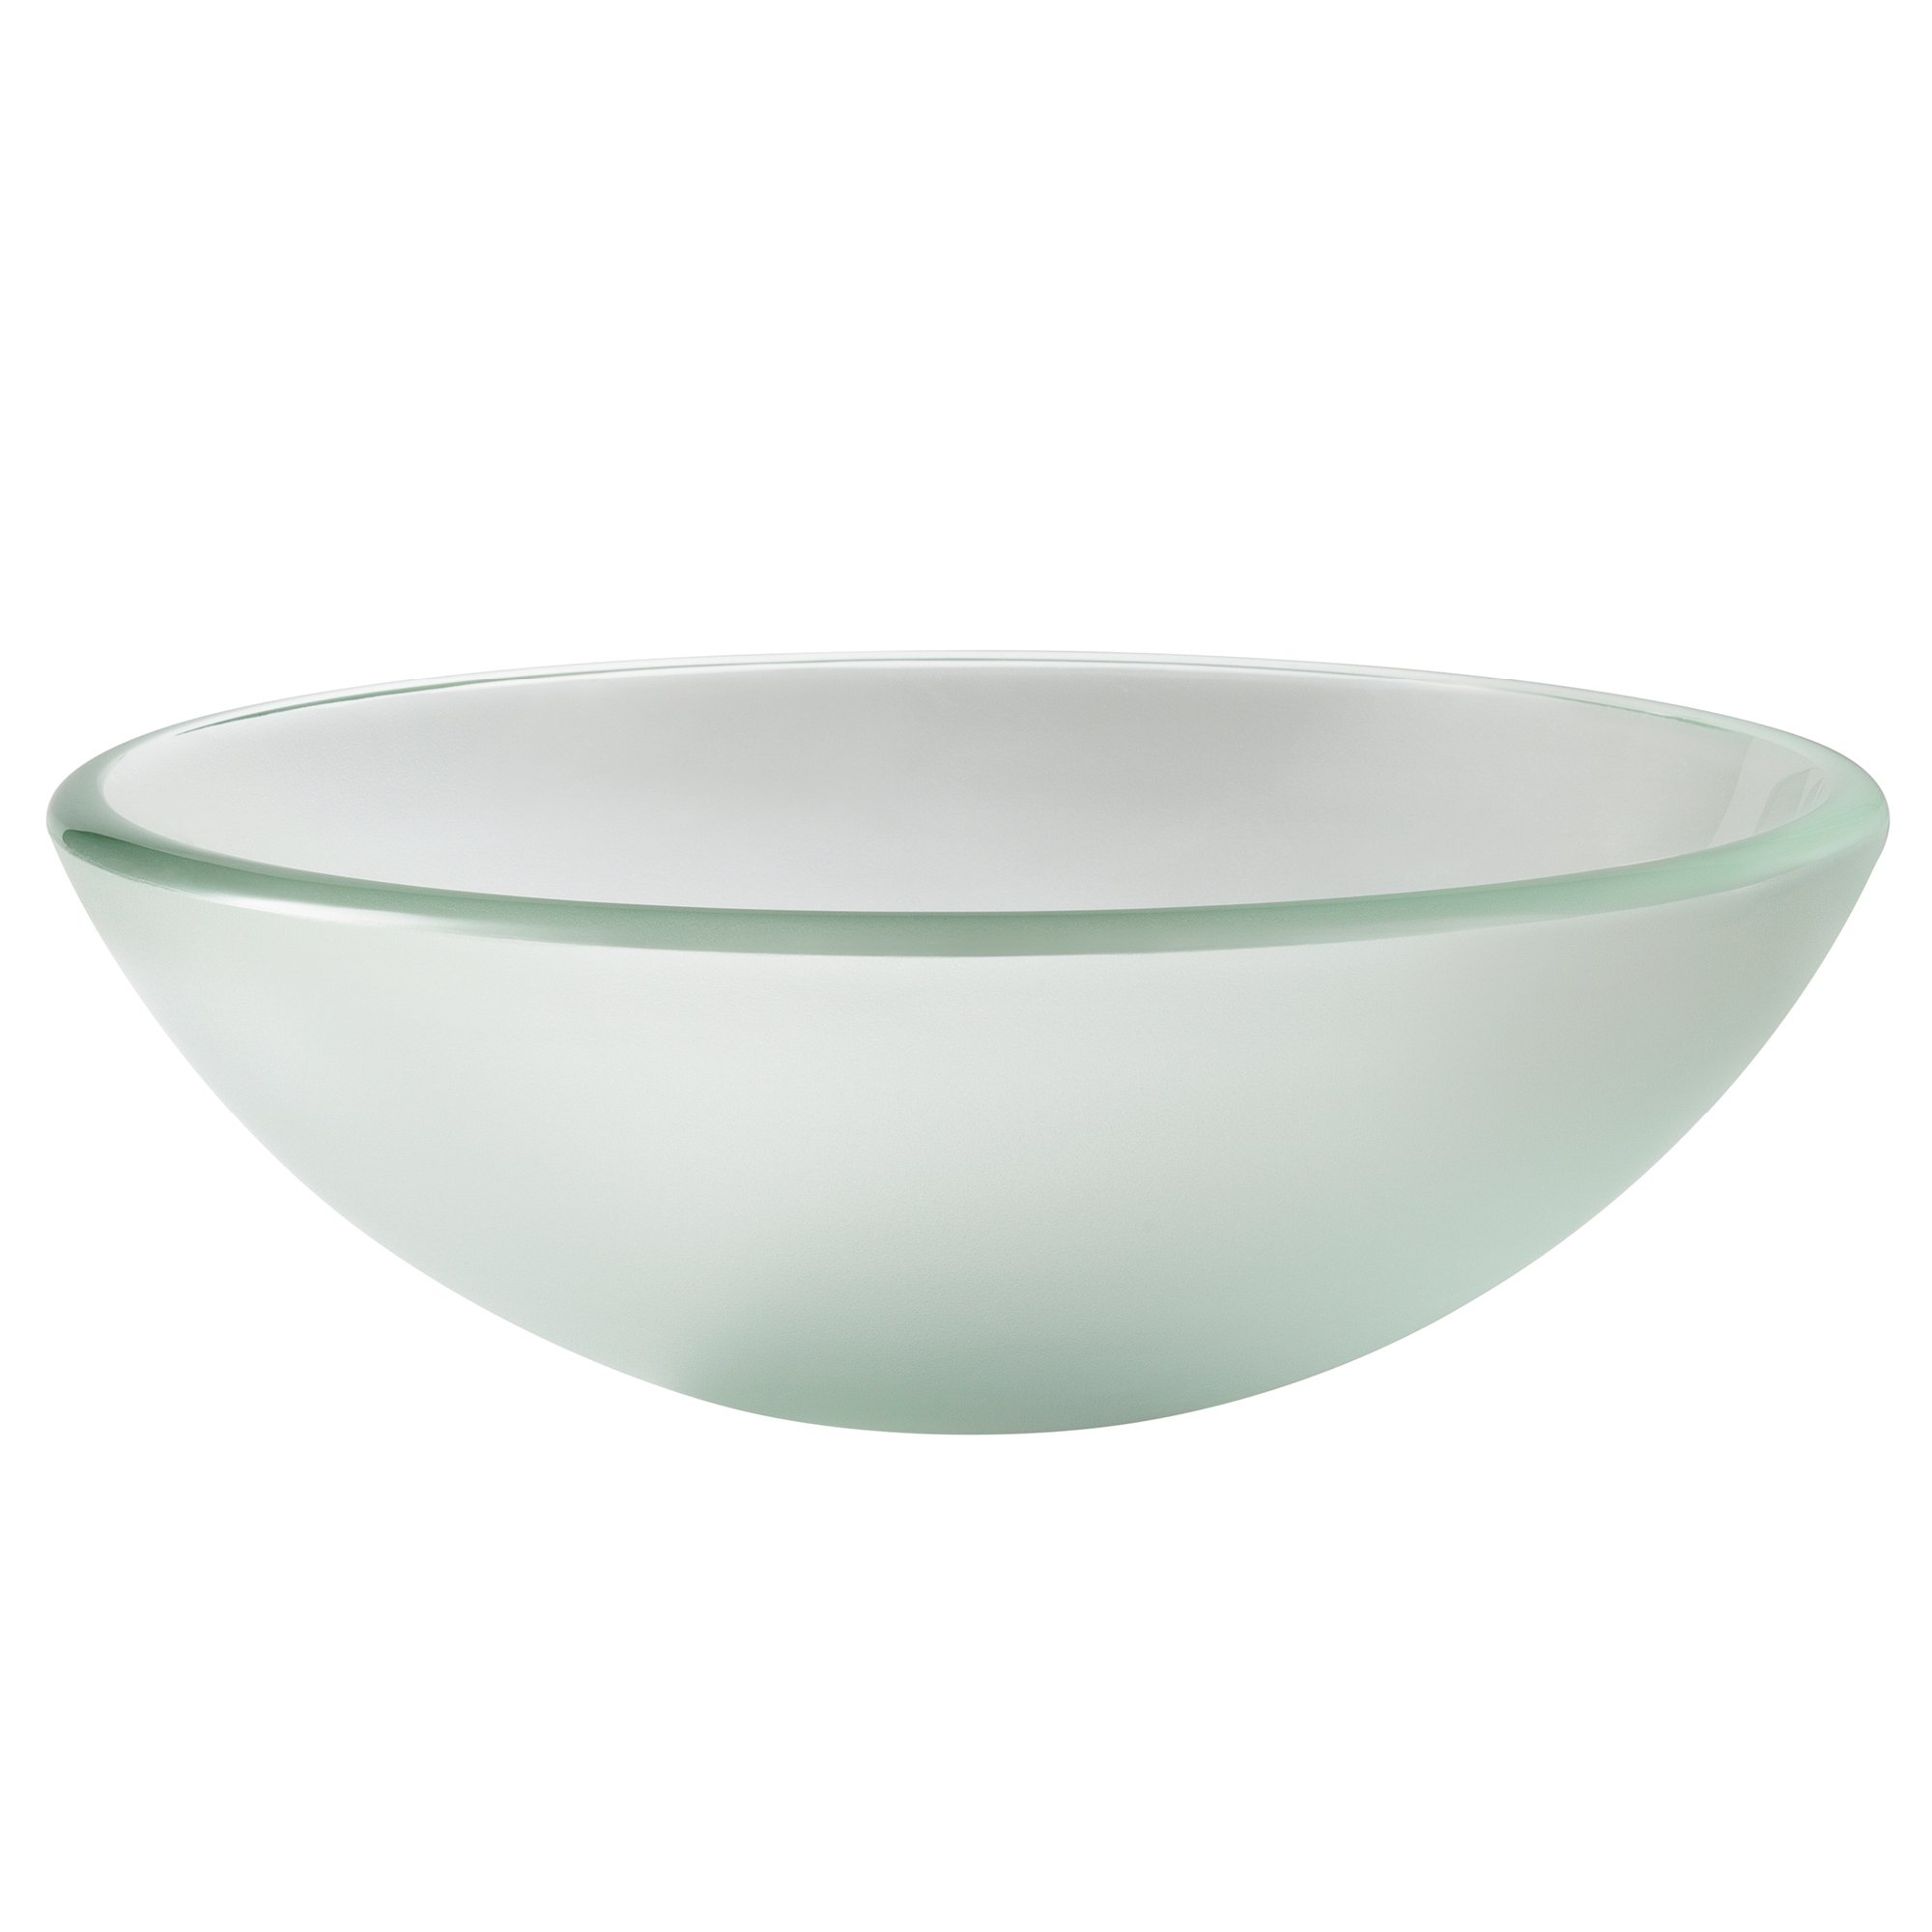 Kraus GV-101FR-14 Frosted 14 inch Glass Vessel Bathroom Sink by Kraus